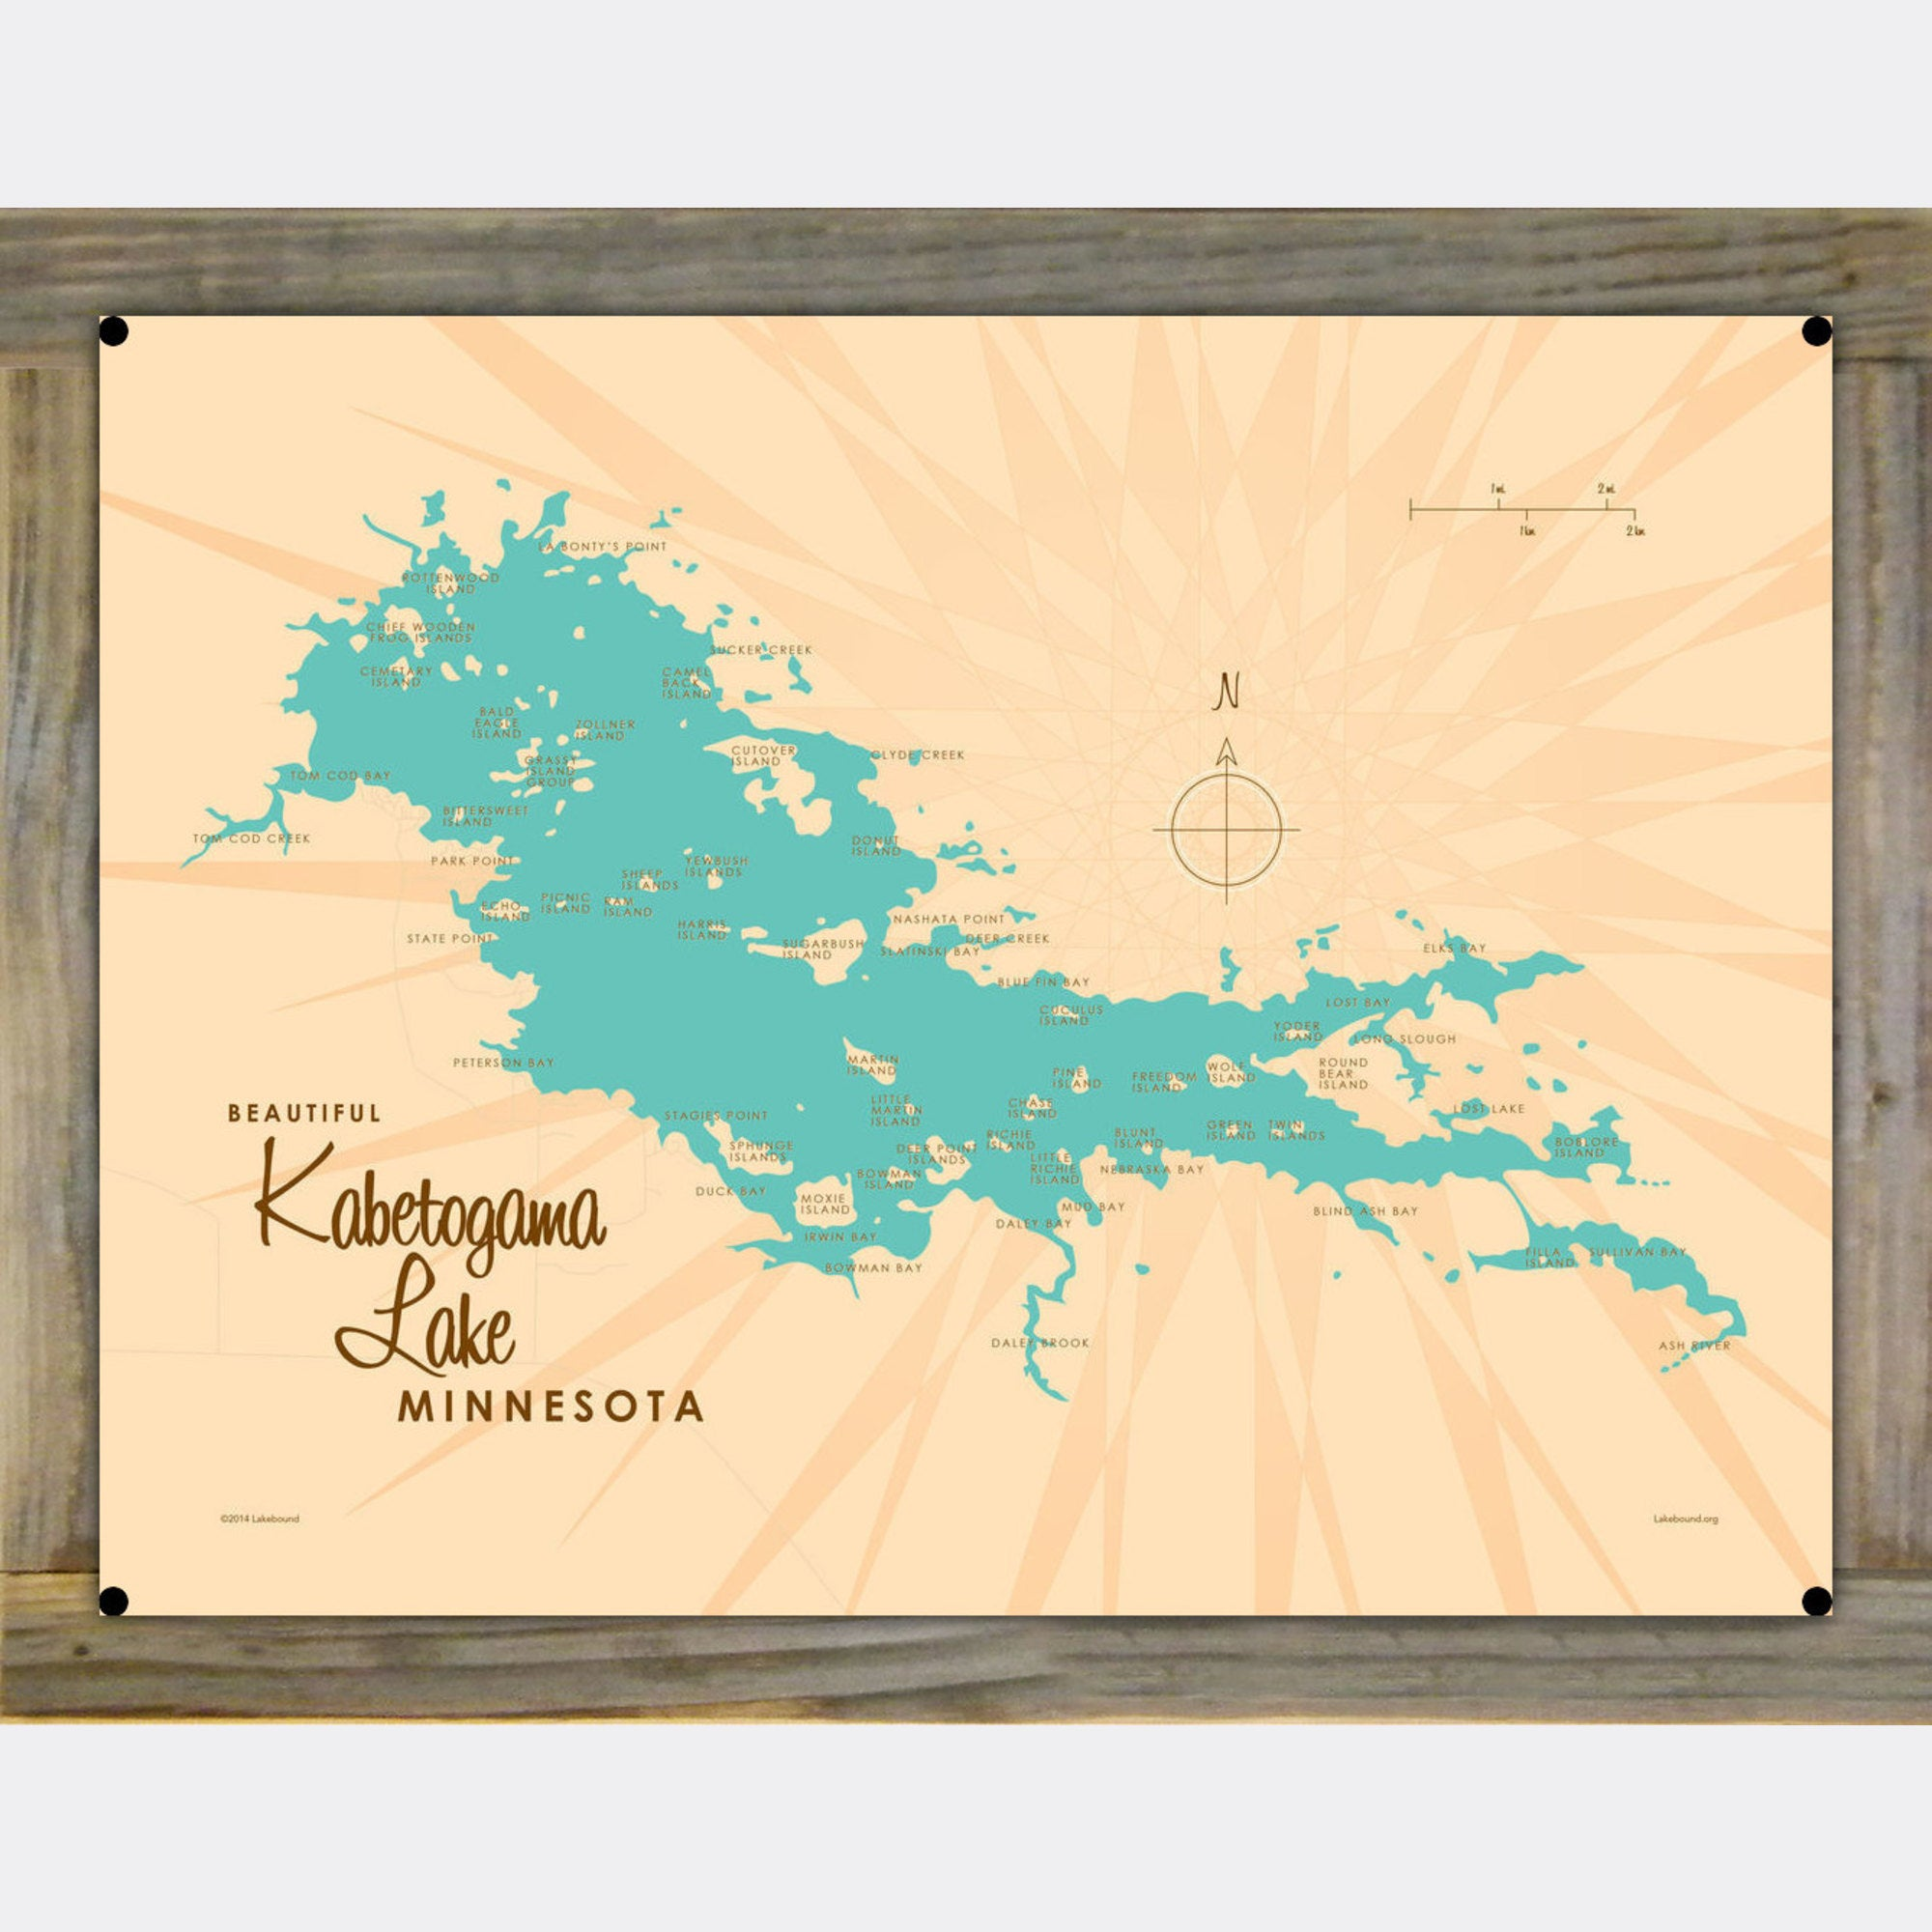 Kabetogama Lake Minnesota, Wood-Mounted Metal Sign Map Art